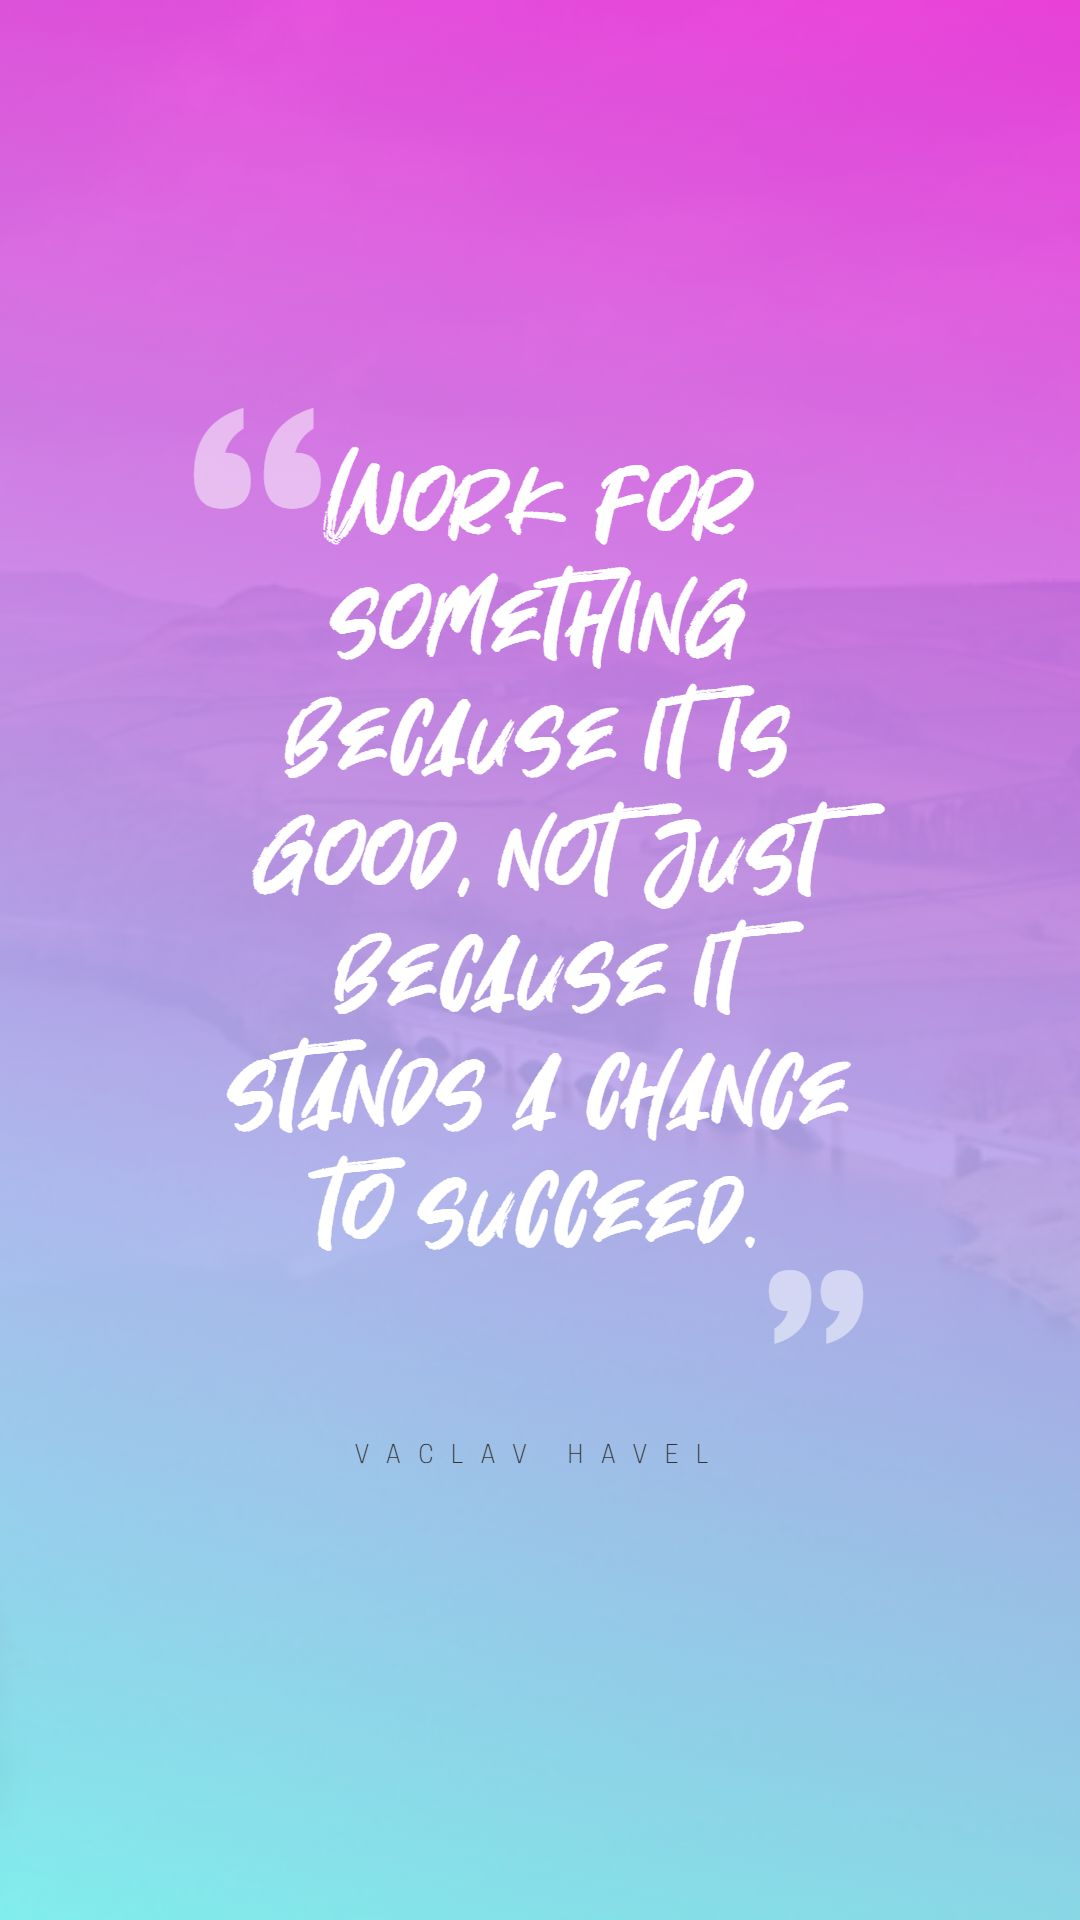 Quotes image of Work for something because it is good, not just because it stands a chance to succeed.